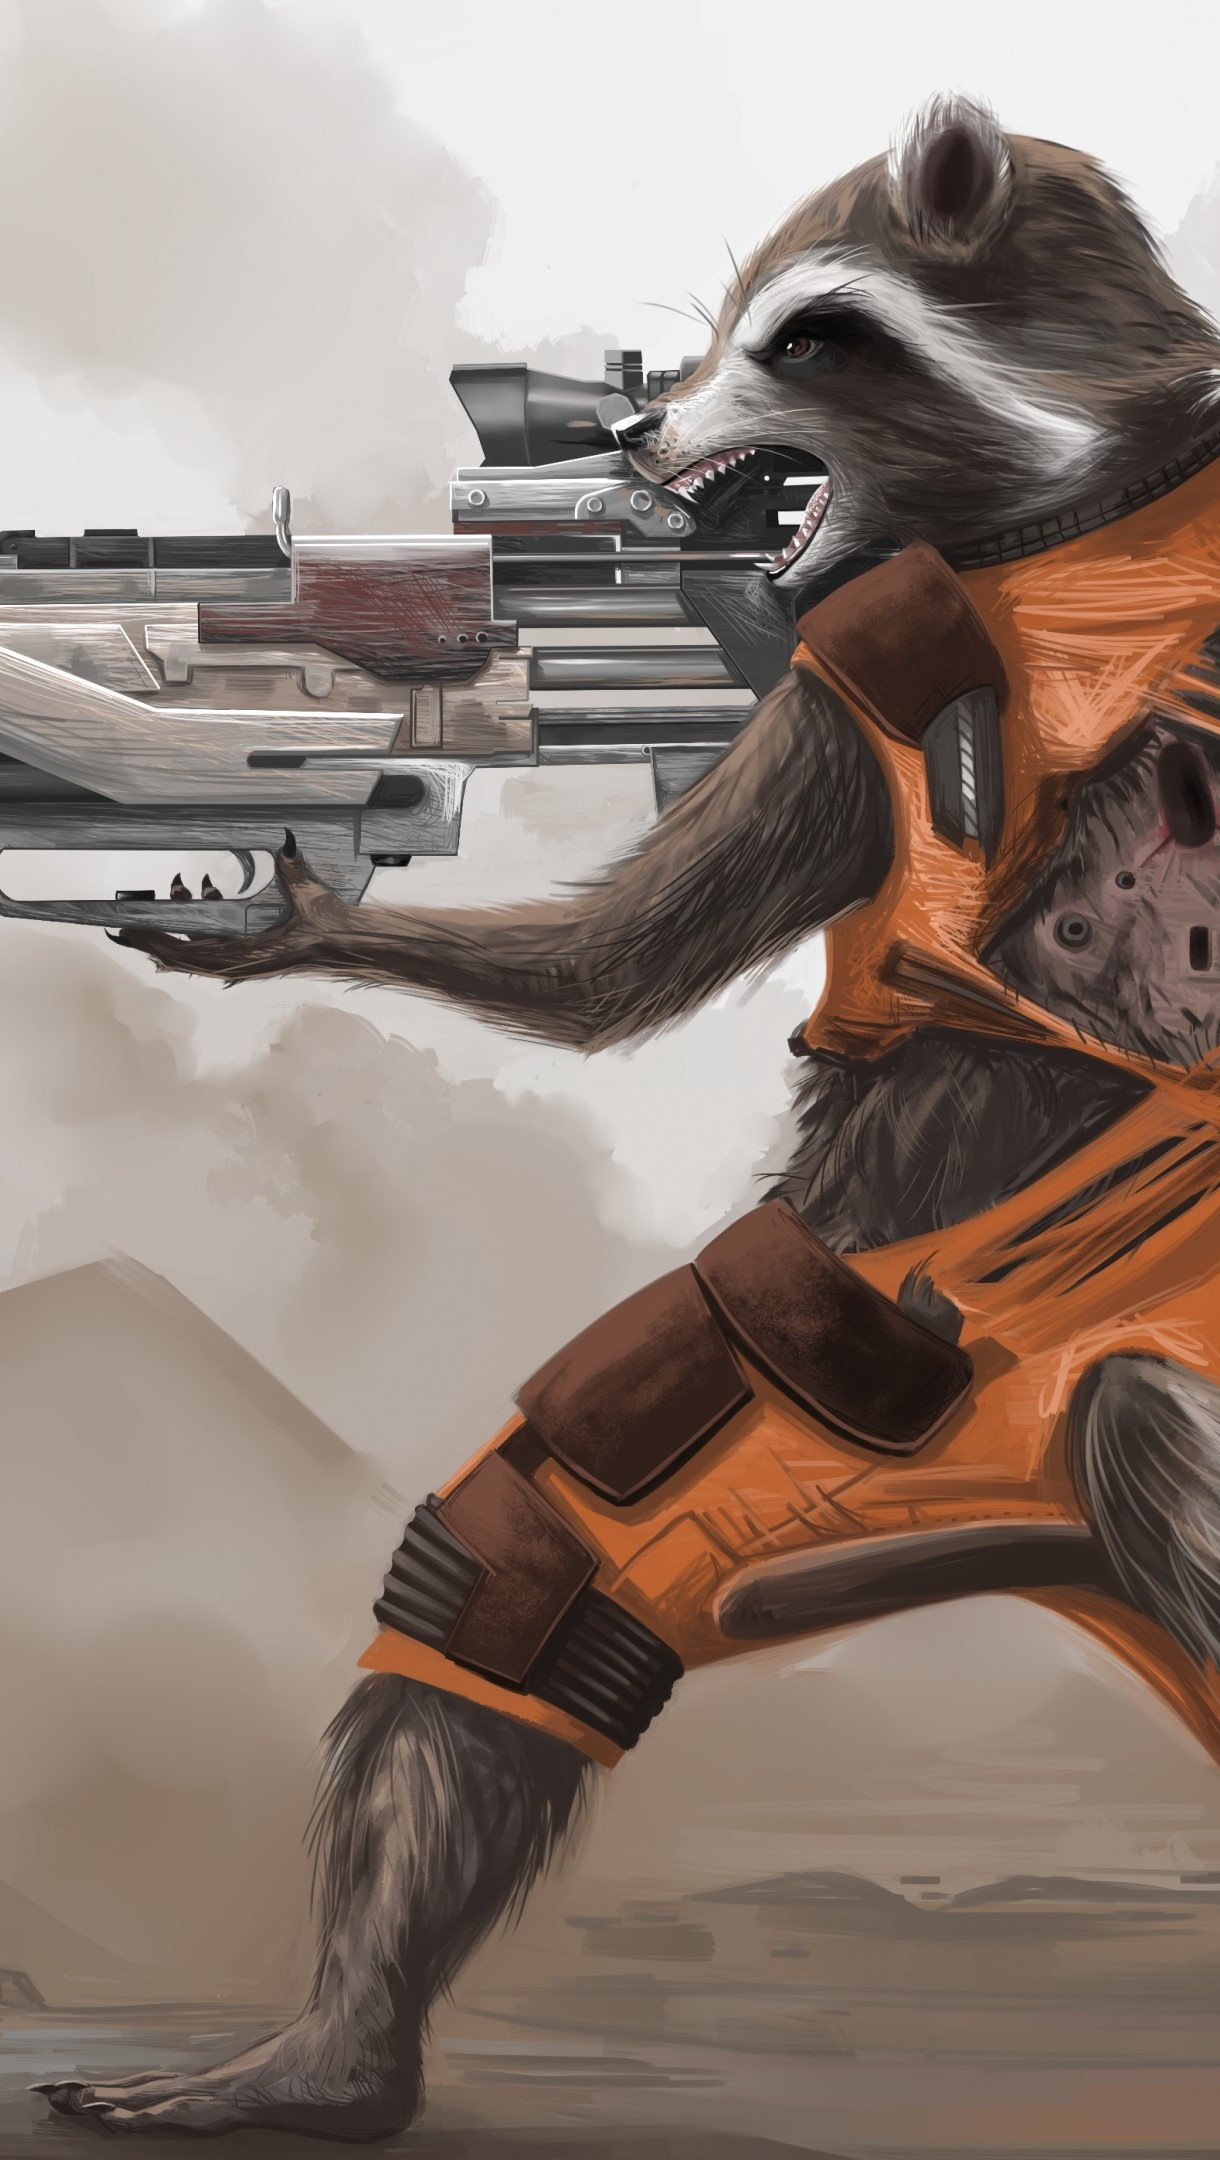 Wallpaper Rocket Raccoon of Guardians of the Galaxy Vertical